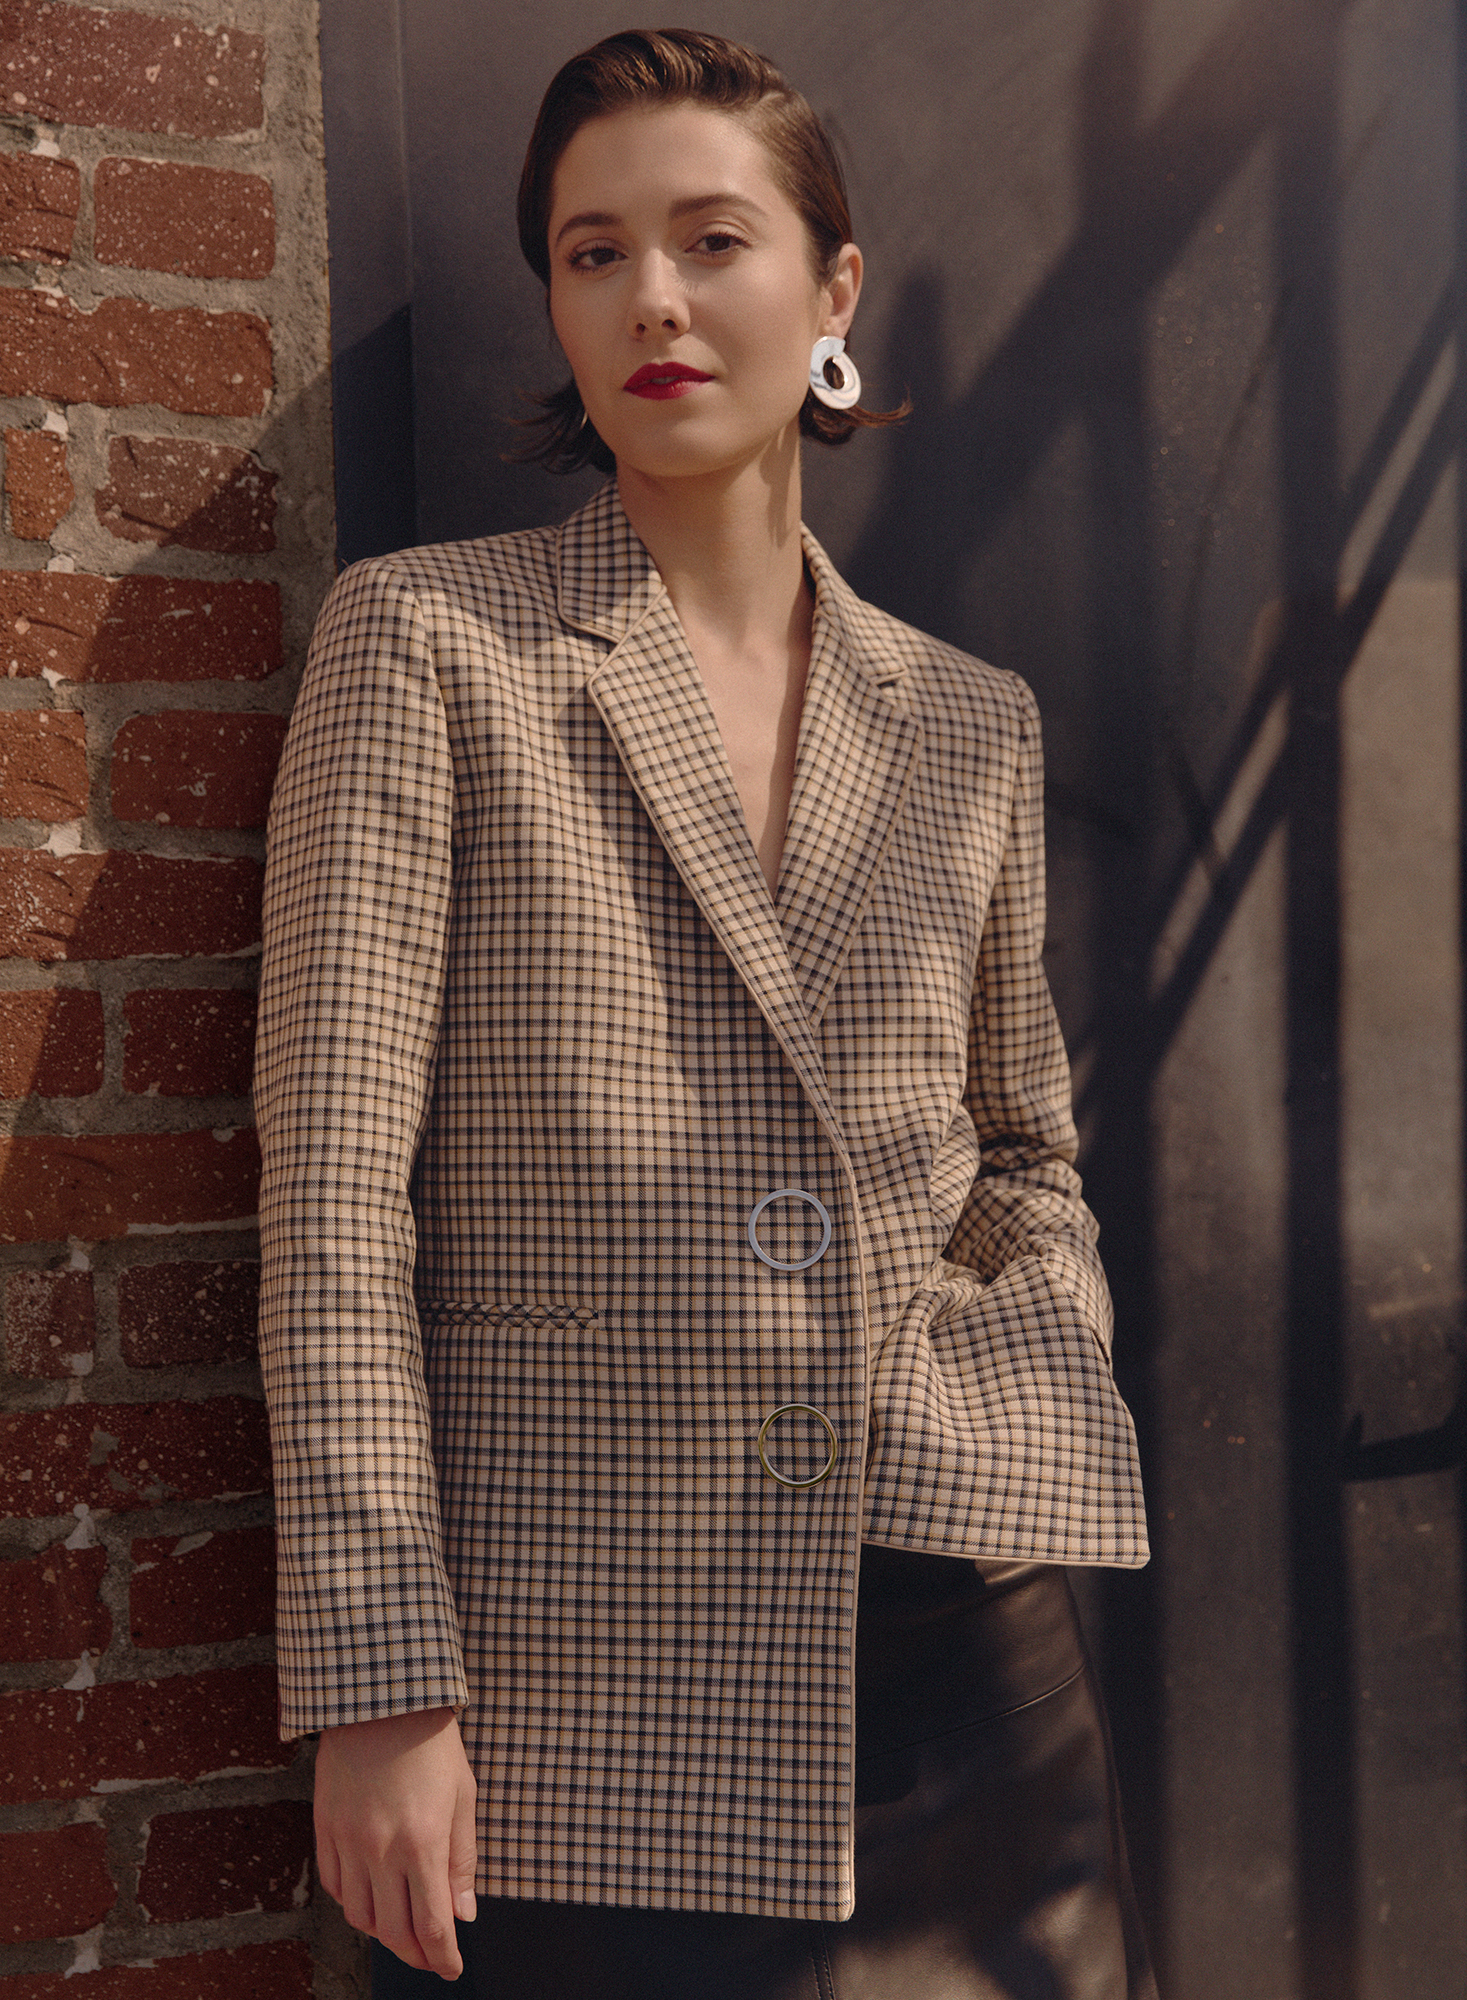 Blazer and skirt by   SANDRO   |  Bloomingdales Beverly Center ; Earrings by   JENNY BIRD